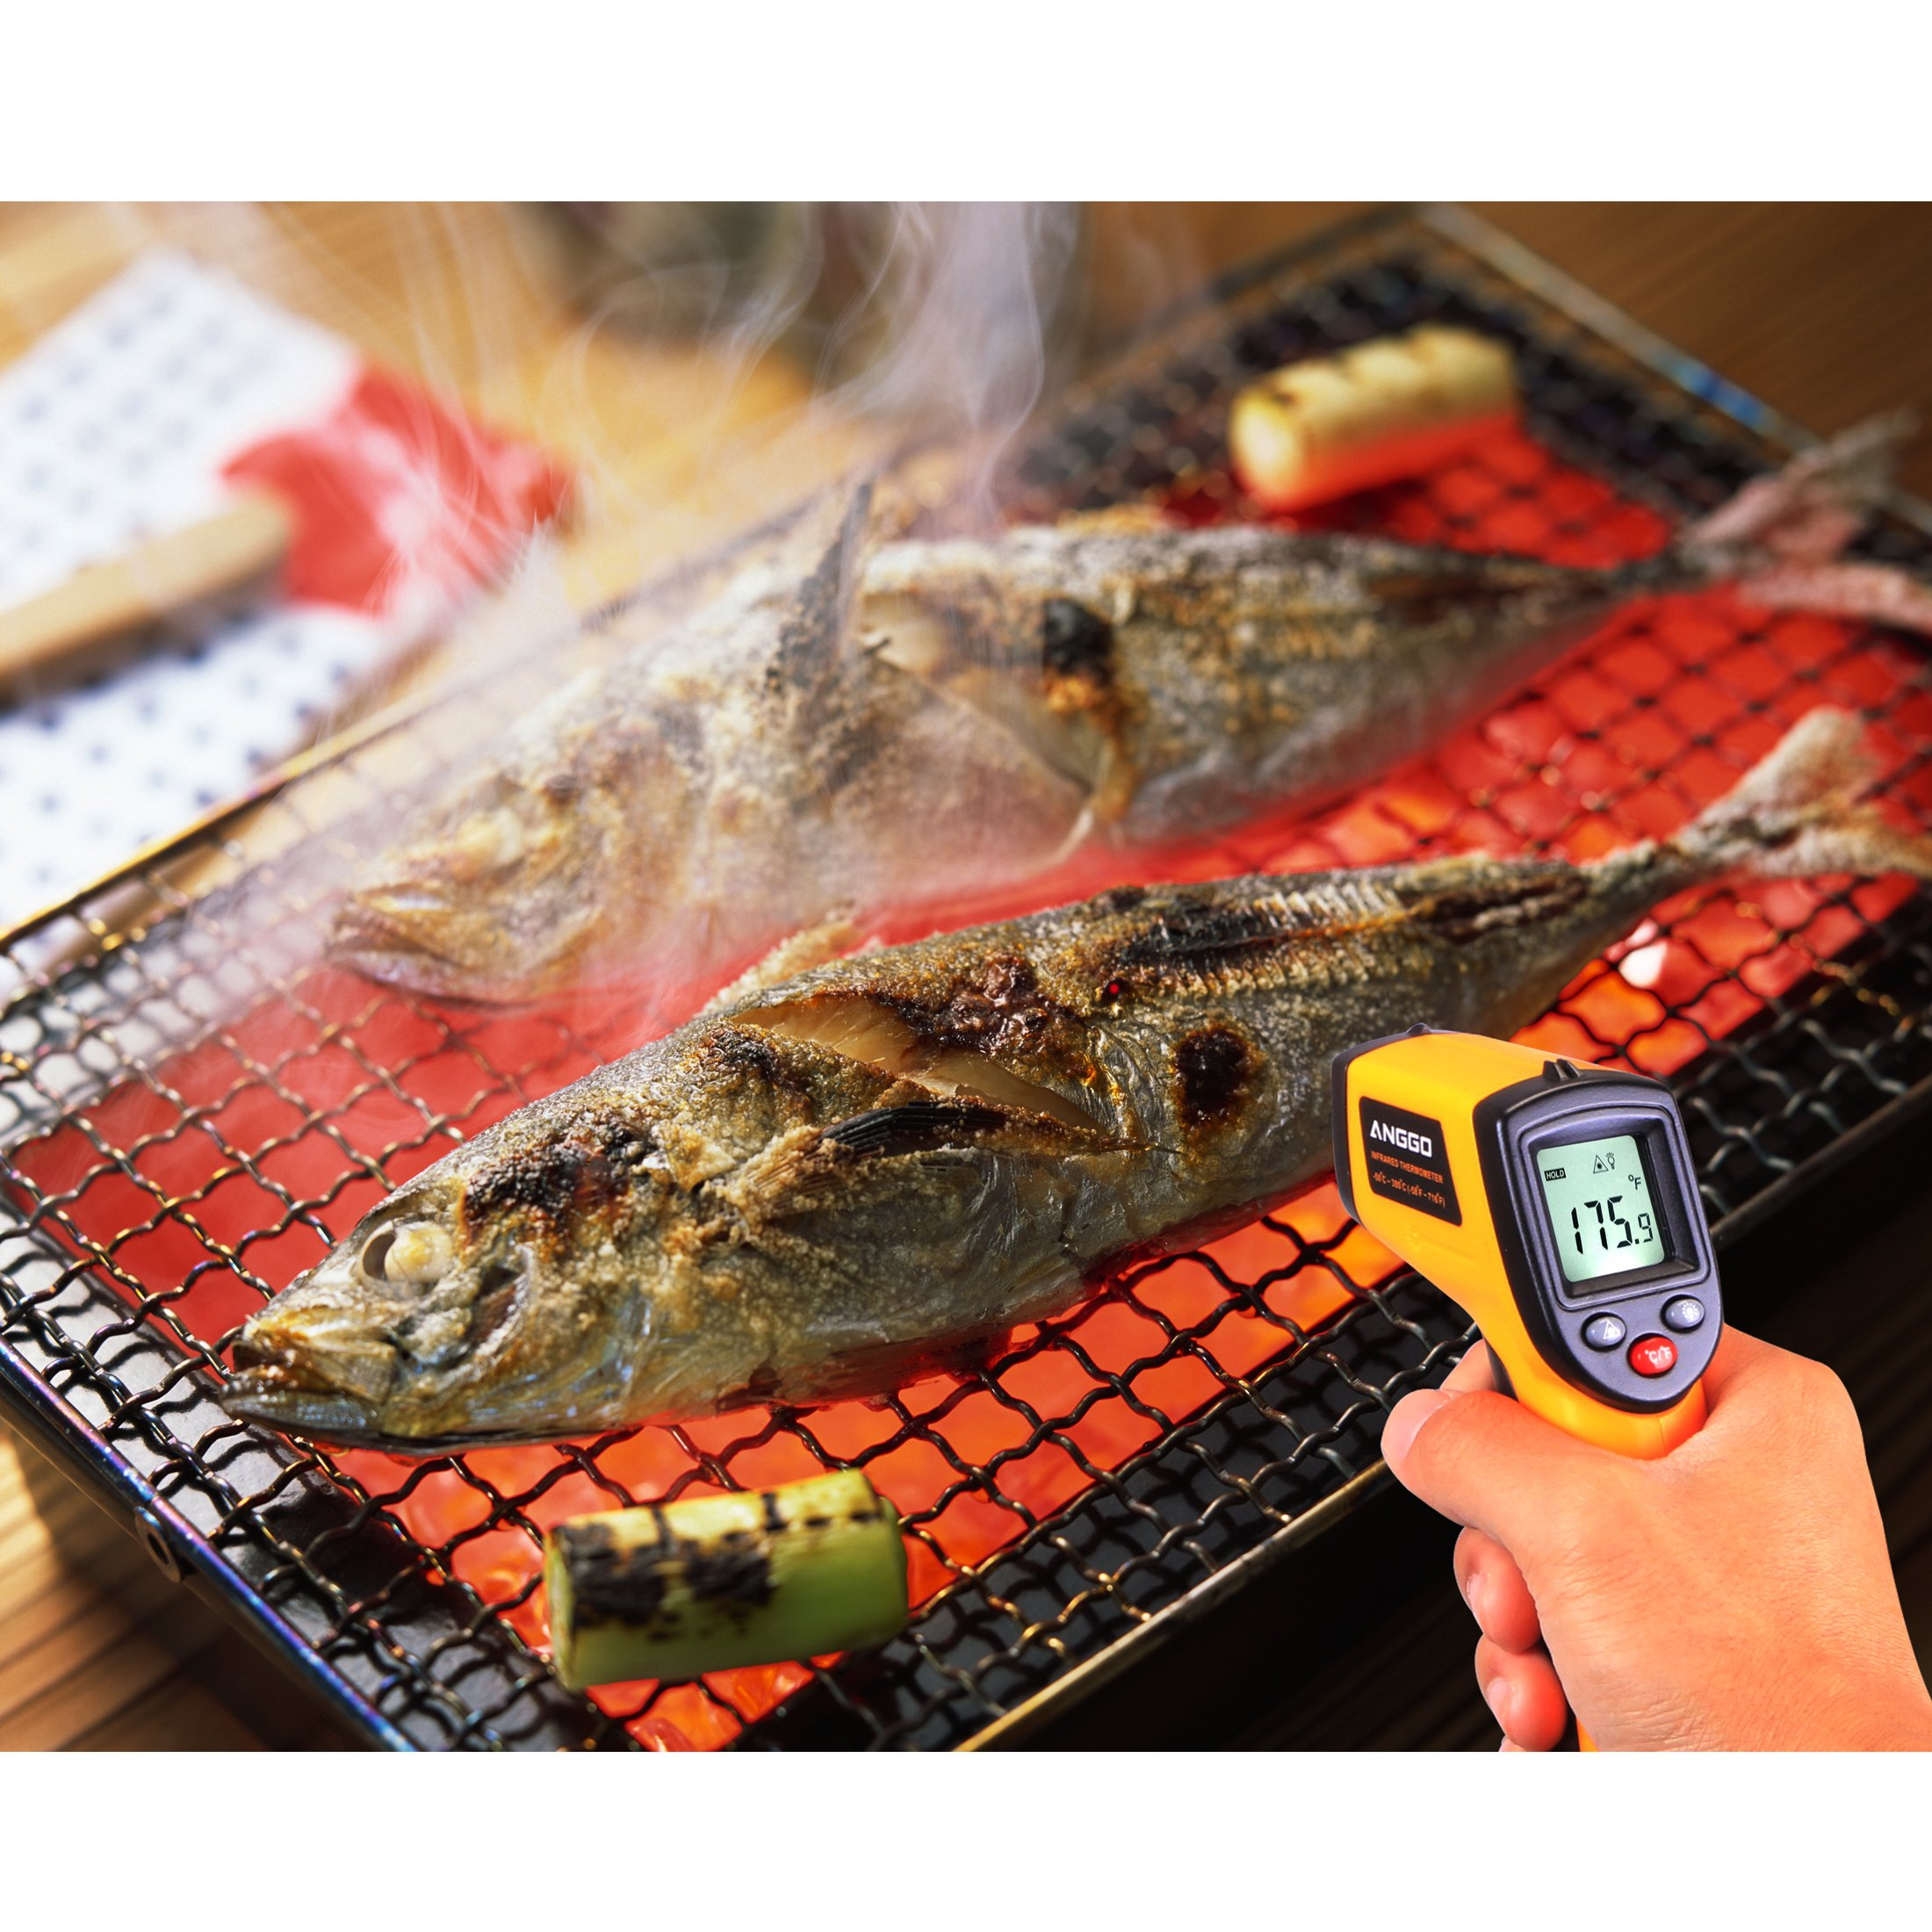 ANGGO IR Infrared Non-contact Digital Temperature Gun Thermometer with Laser for Precisely Aiming, Bright LCD Display with LED Backlight (-58 °F to 716°F) by ANGGO (Image #3)